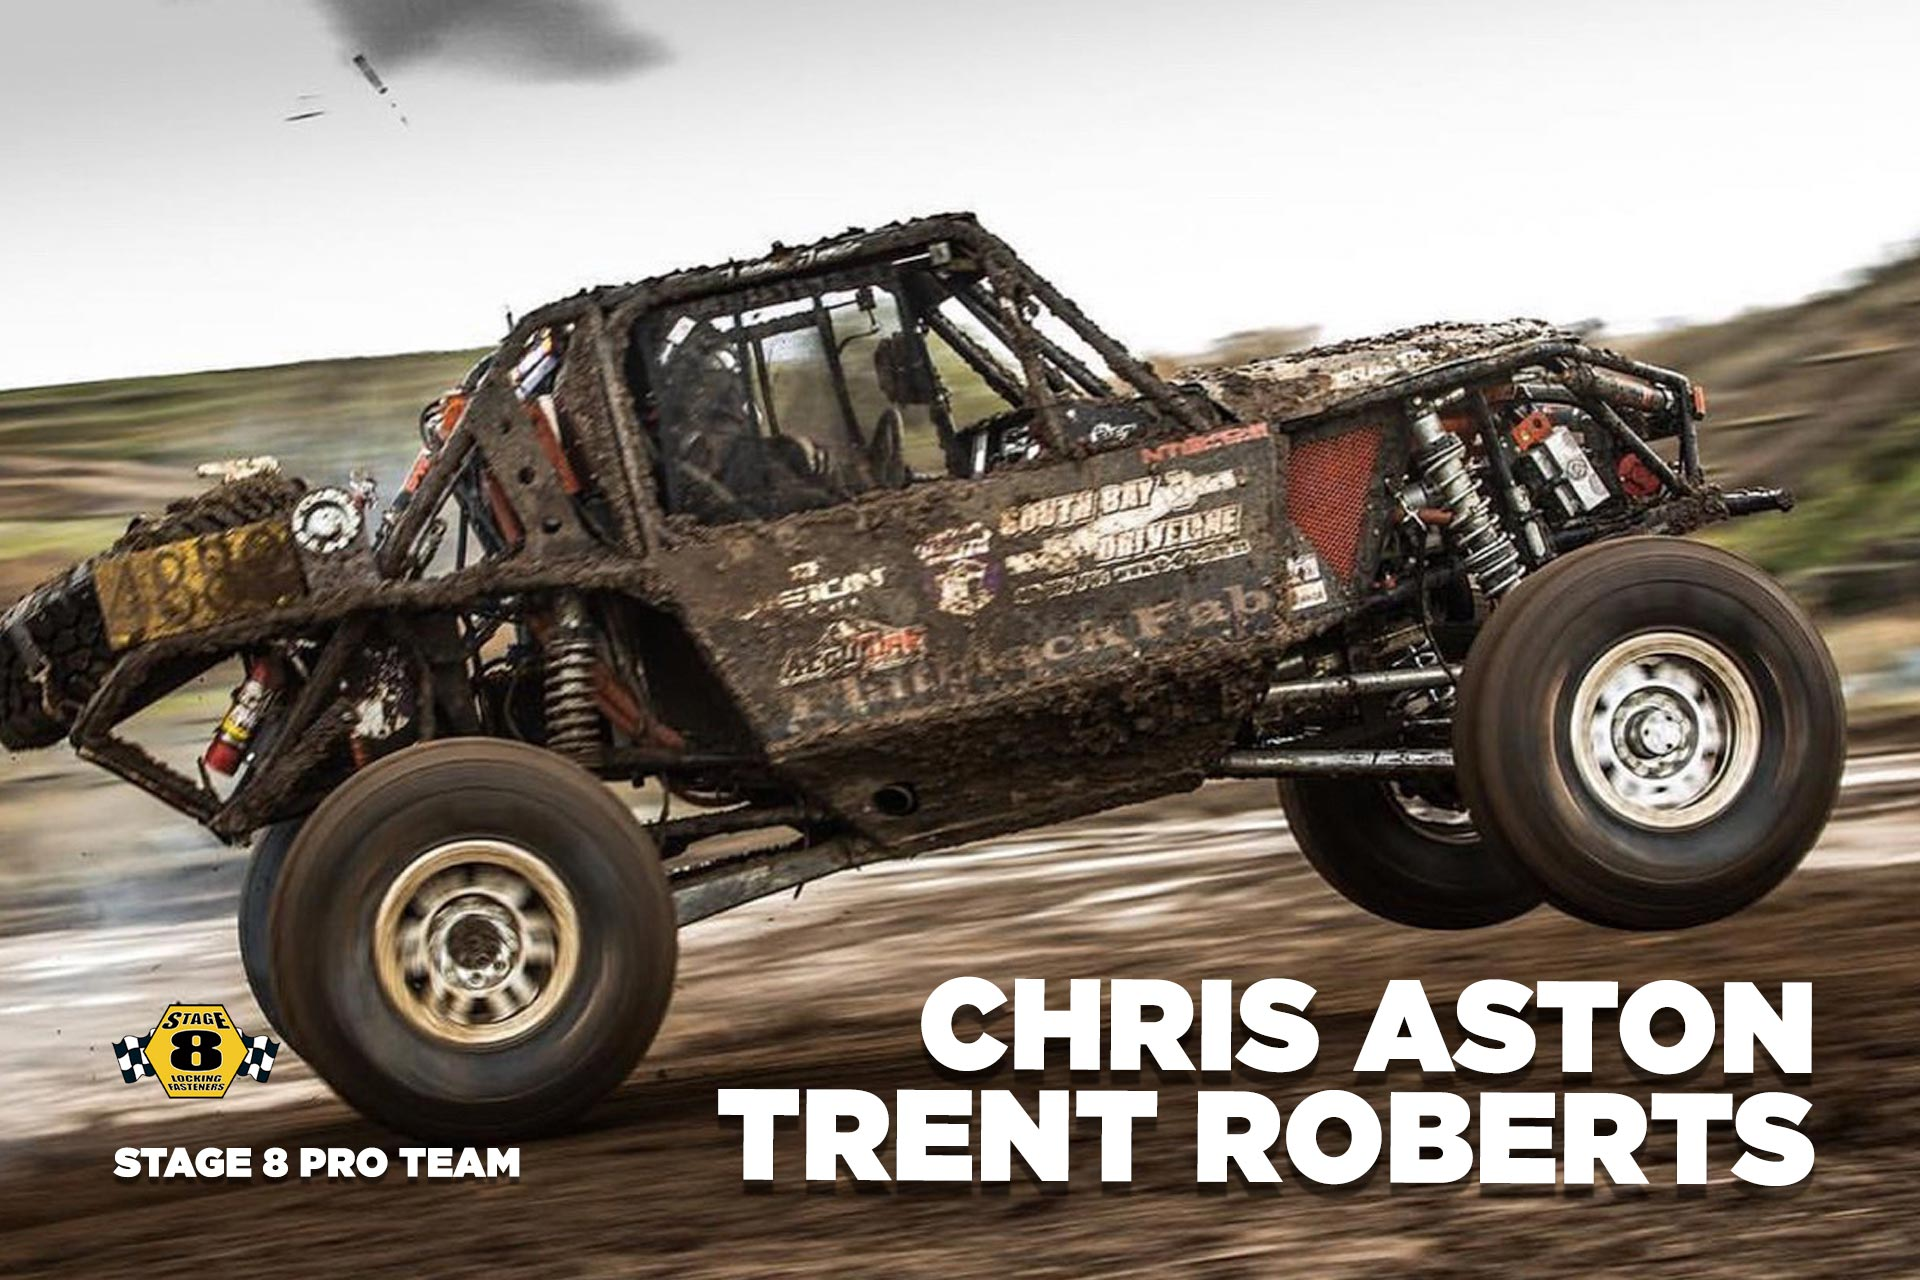 Stage 8 Pro Team Members Chris Ashton and Trent Roberts